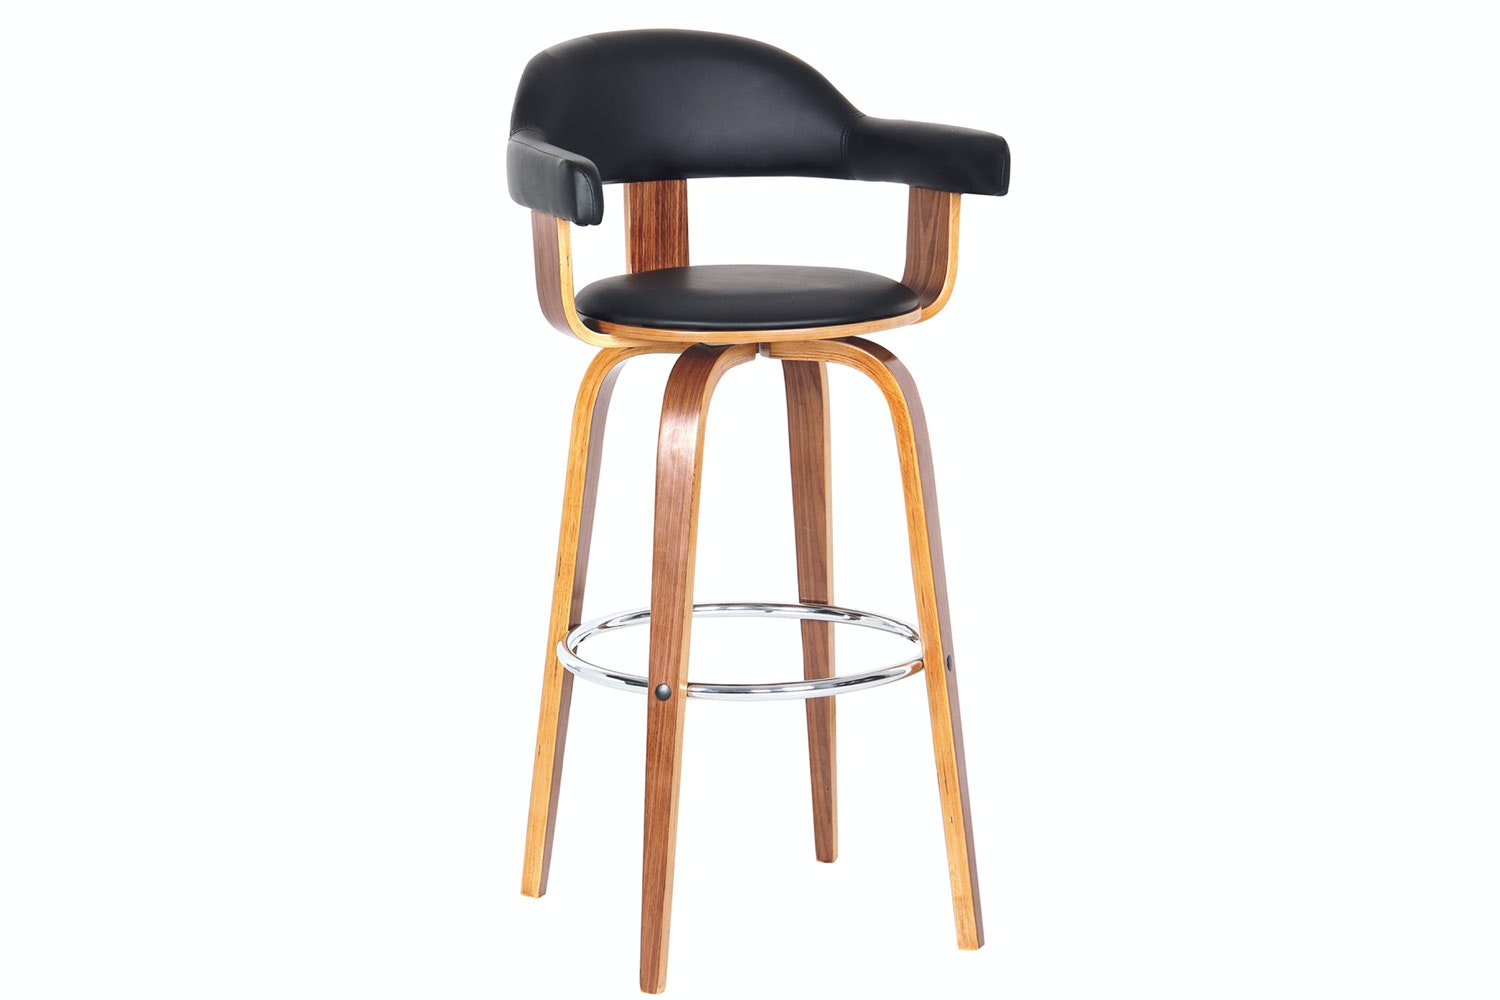 Wilson Swivel Bar Stool Shop at Harvey Norman Ireland : Wilson from www.harveynorman.ie size 833 x 555 jpeg 17kB